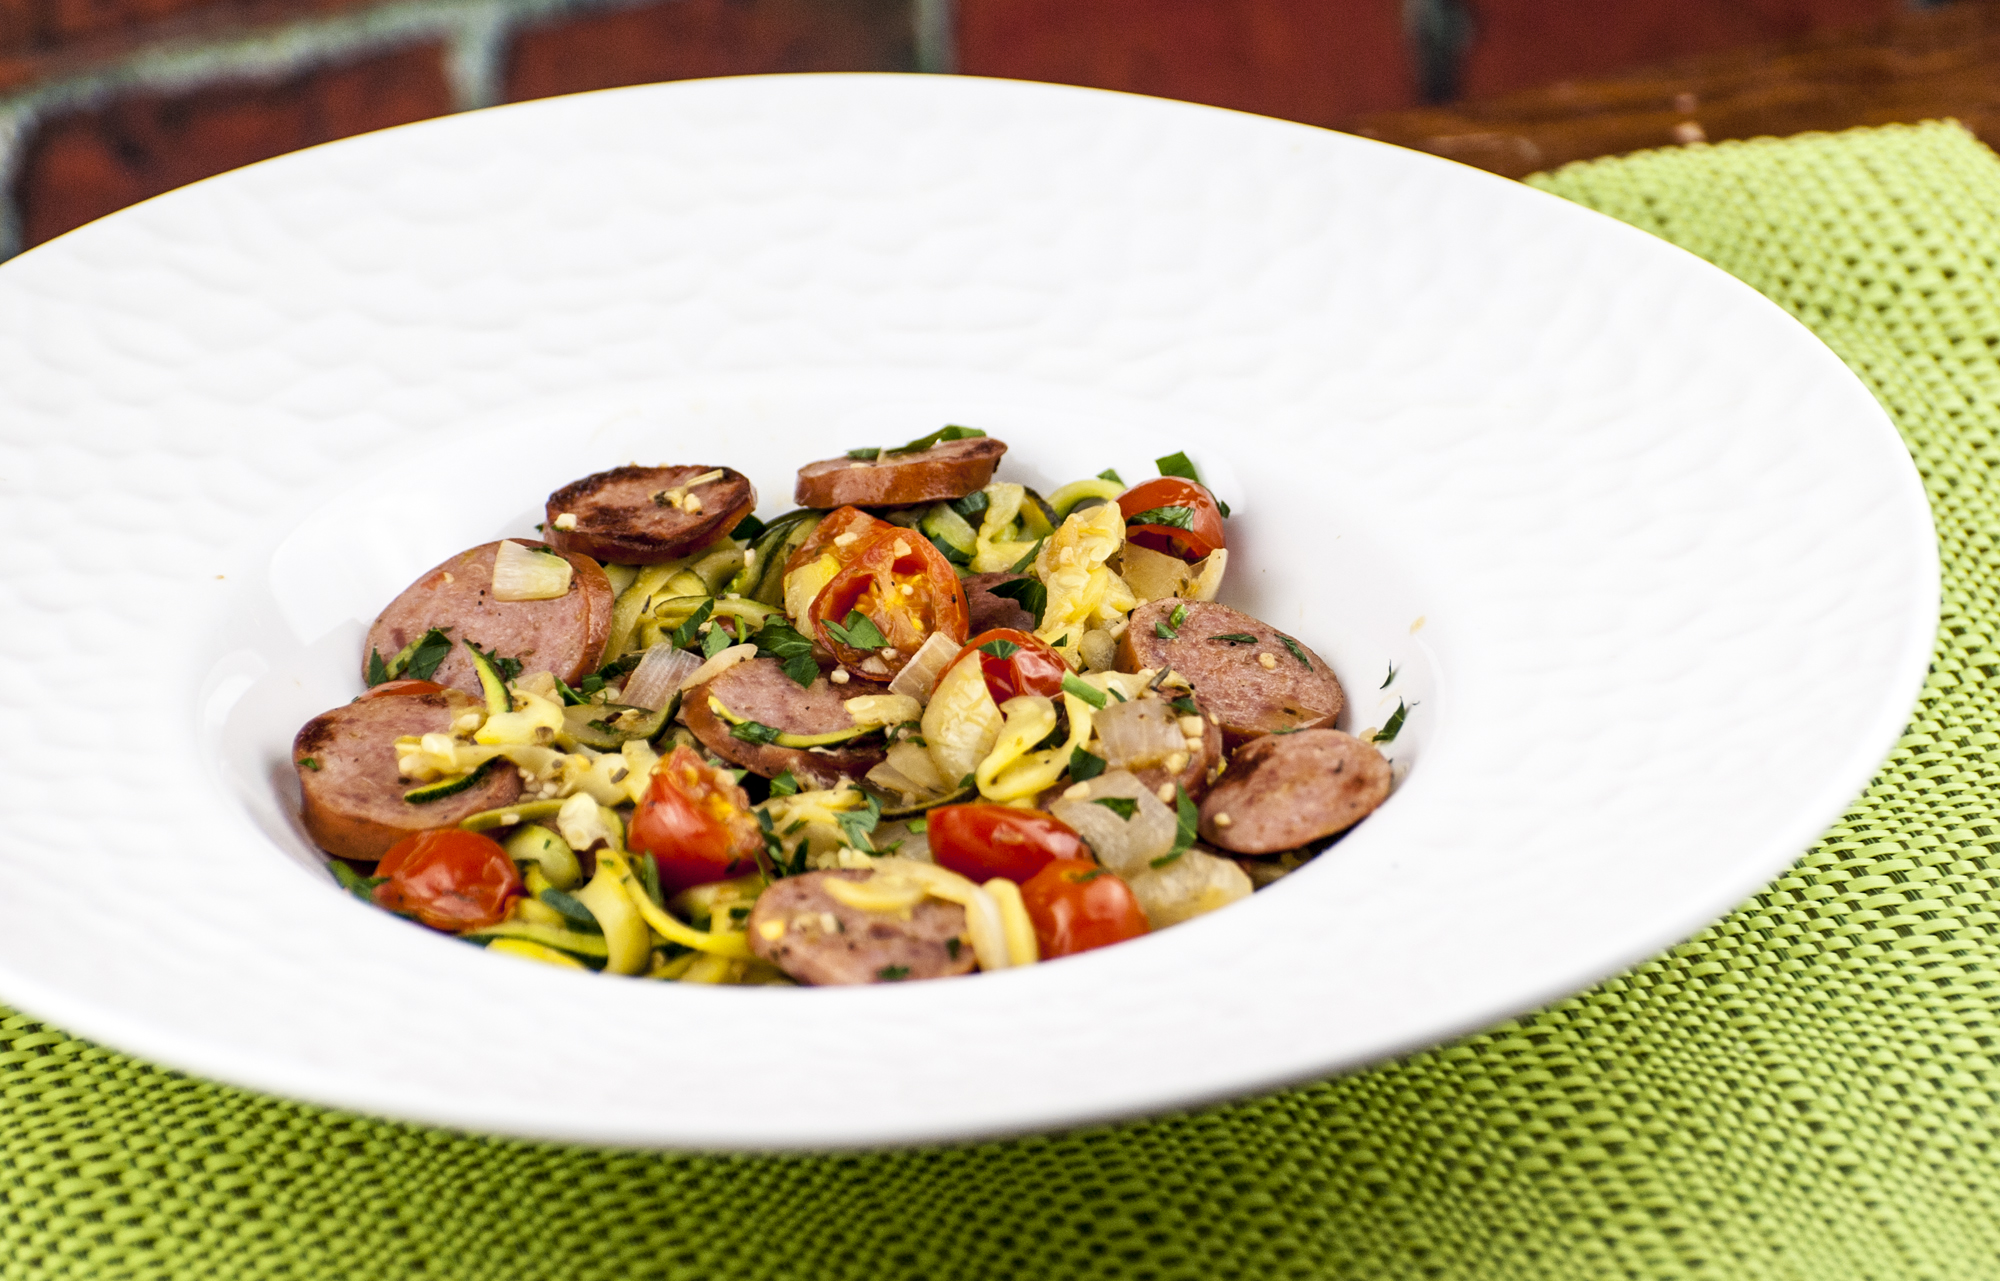 Zucchini Noodles with Smoked Sausage and Cherry Tomatoes in a Zesty Pan Sauce